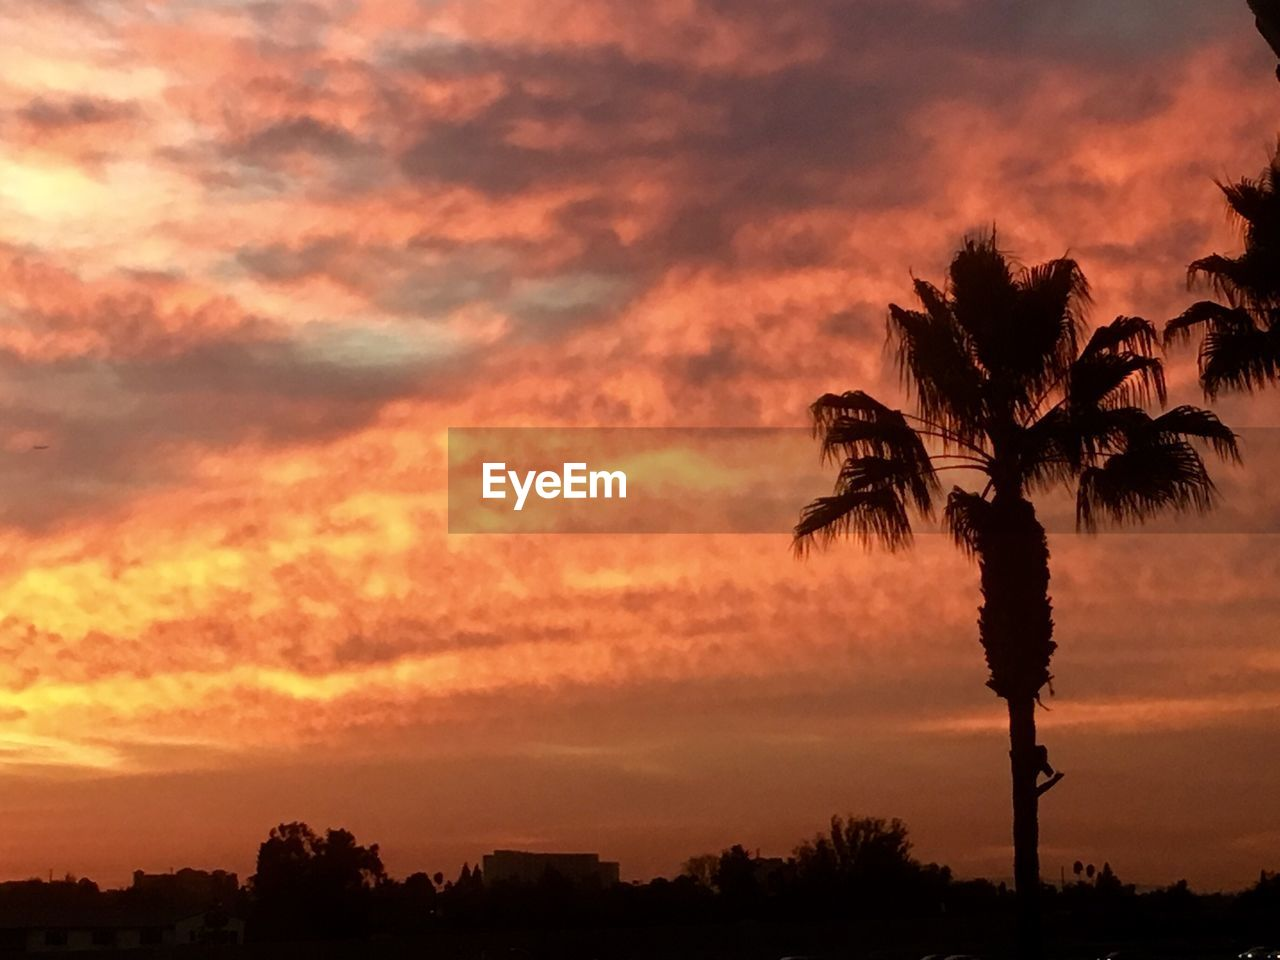 sunset, tree, silhouette, sky, orange color, beauty in nature, nature, dramatic sky, outdoors, cloud - sky, scenics, palm tree, no people, tranquility, tranquil scene, growth